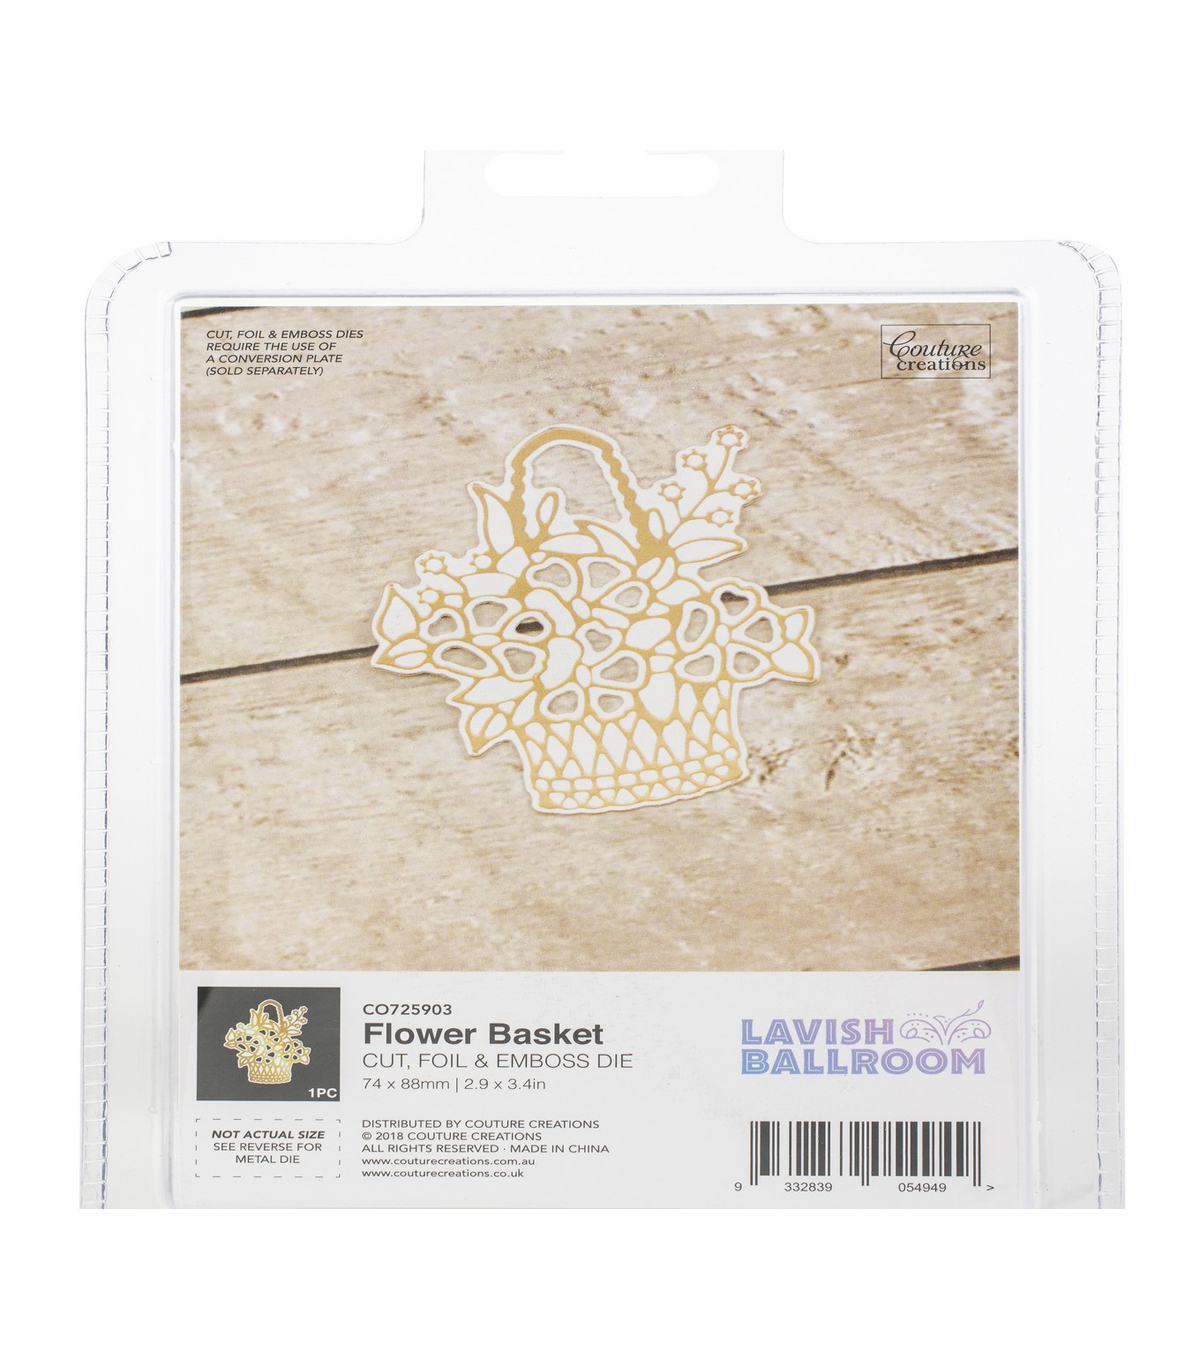 Couture Creations Lavish Ballroom Cut, Foil & Emboss Die-Flower Basket